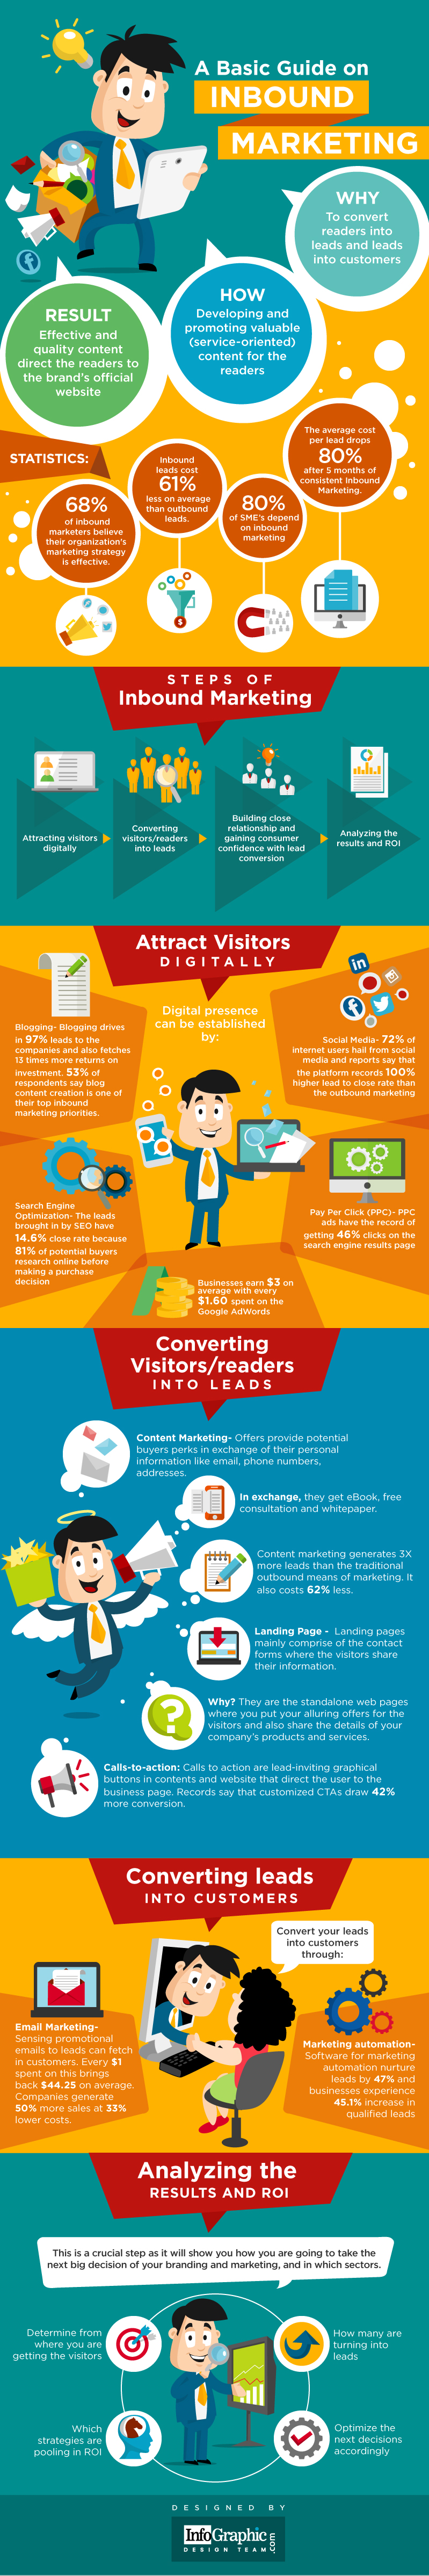 Infographic outlines inbound marketing basics